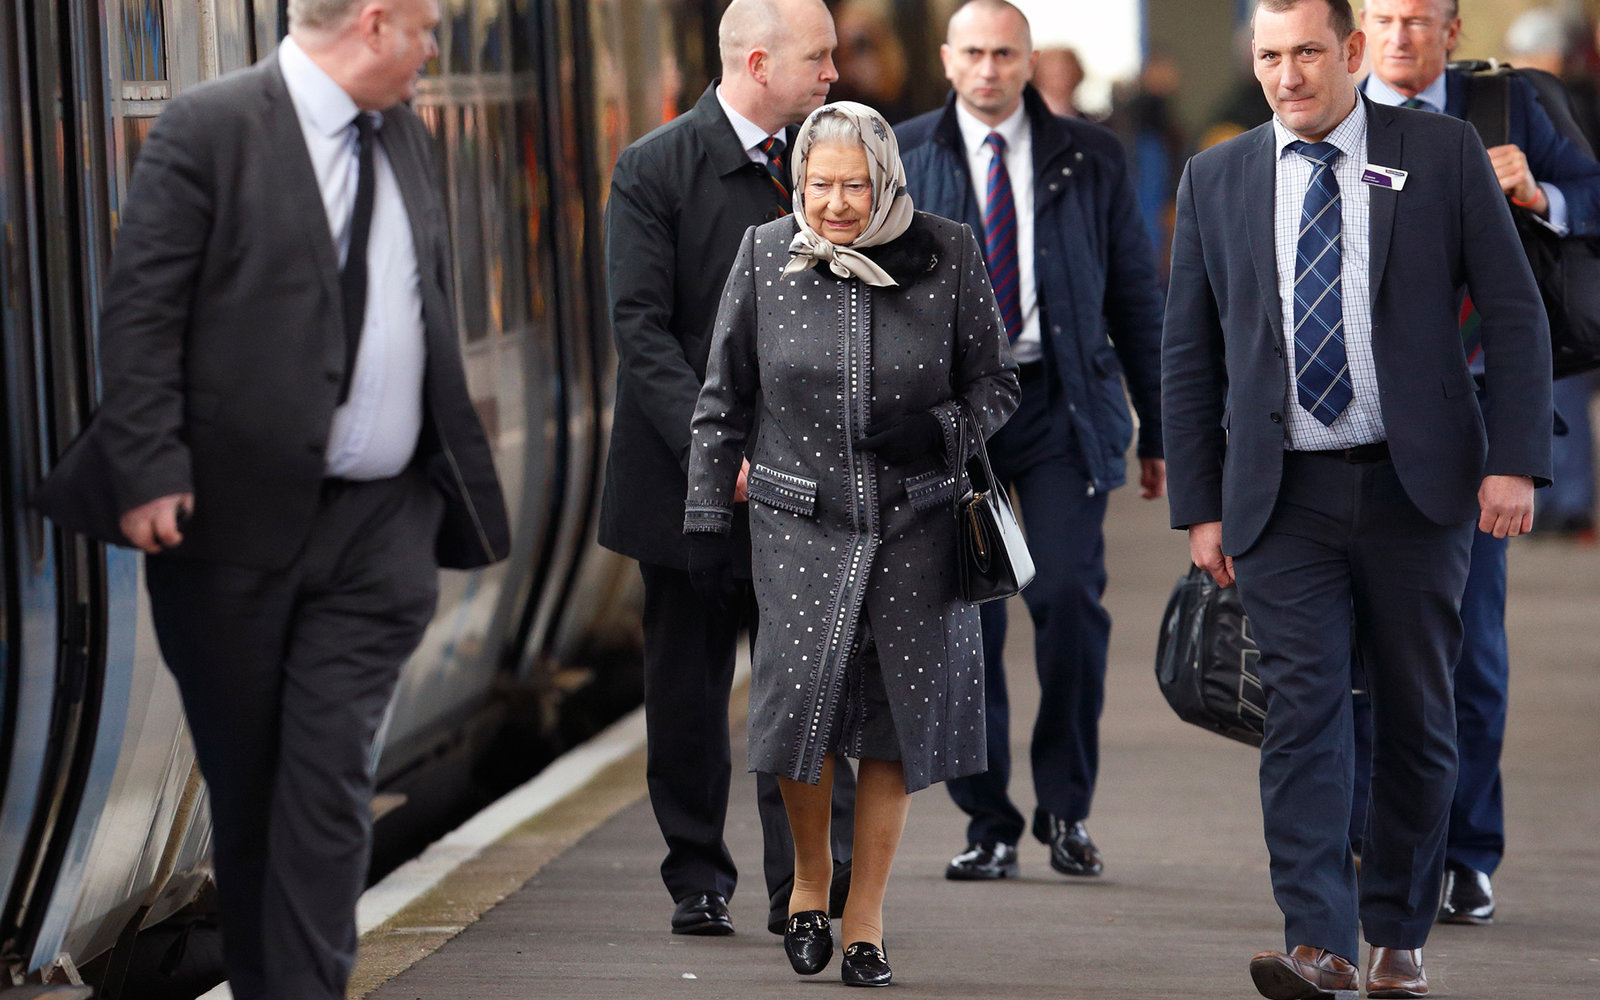 If Trains Are Good Enough for The Queen, They're Good Enough for You